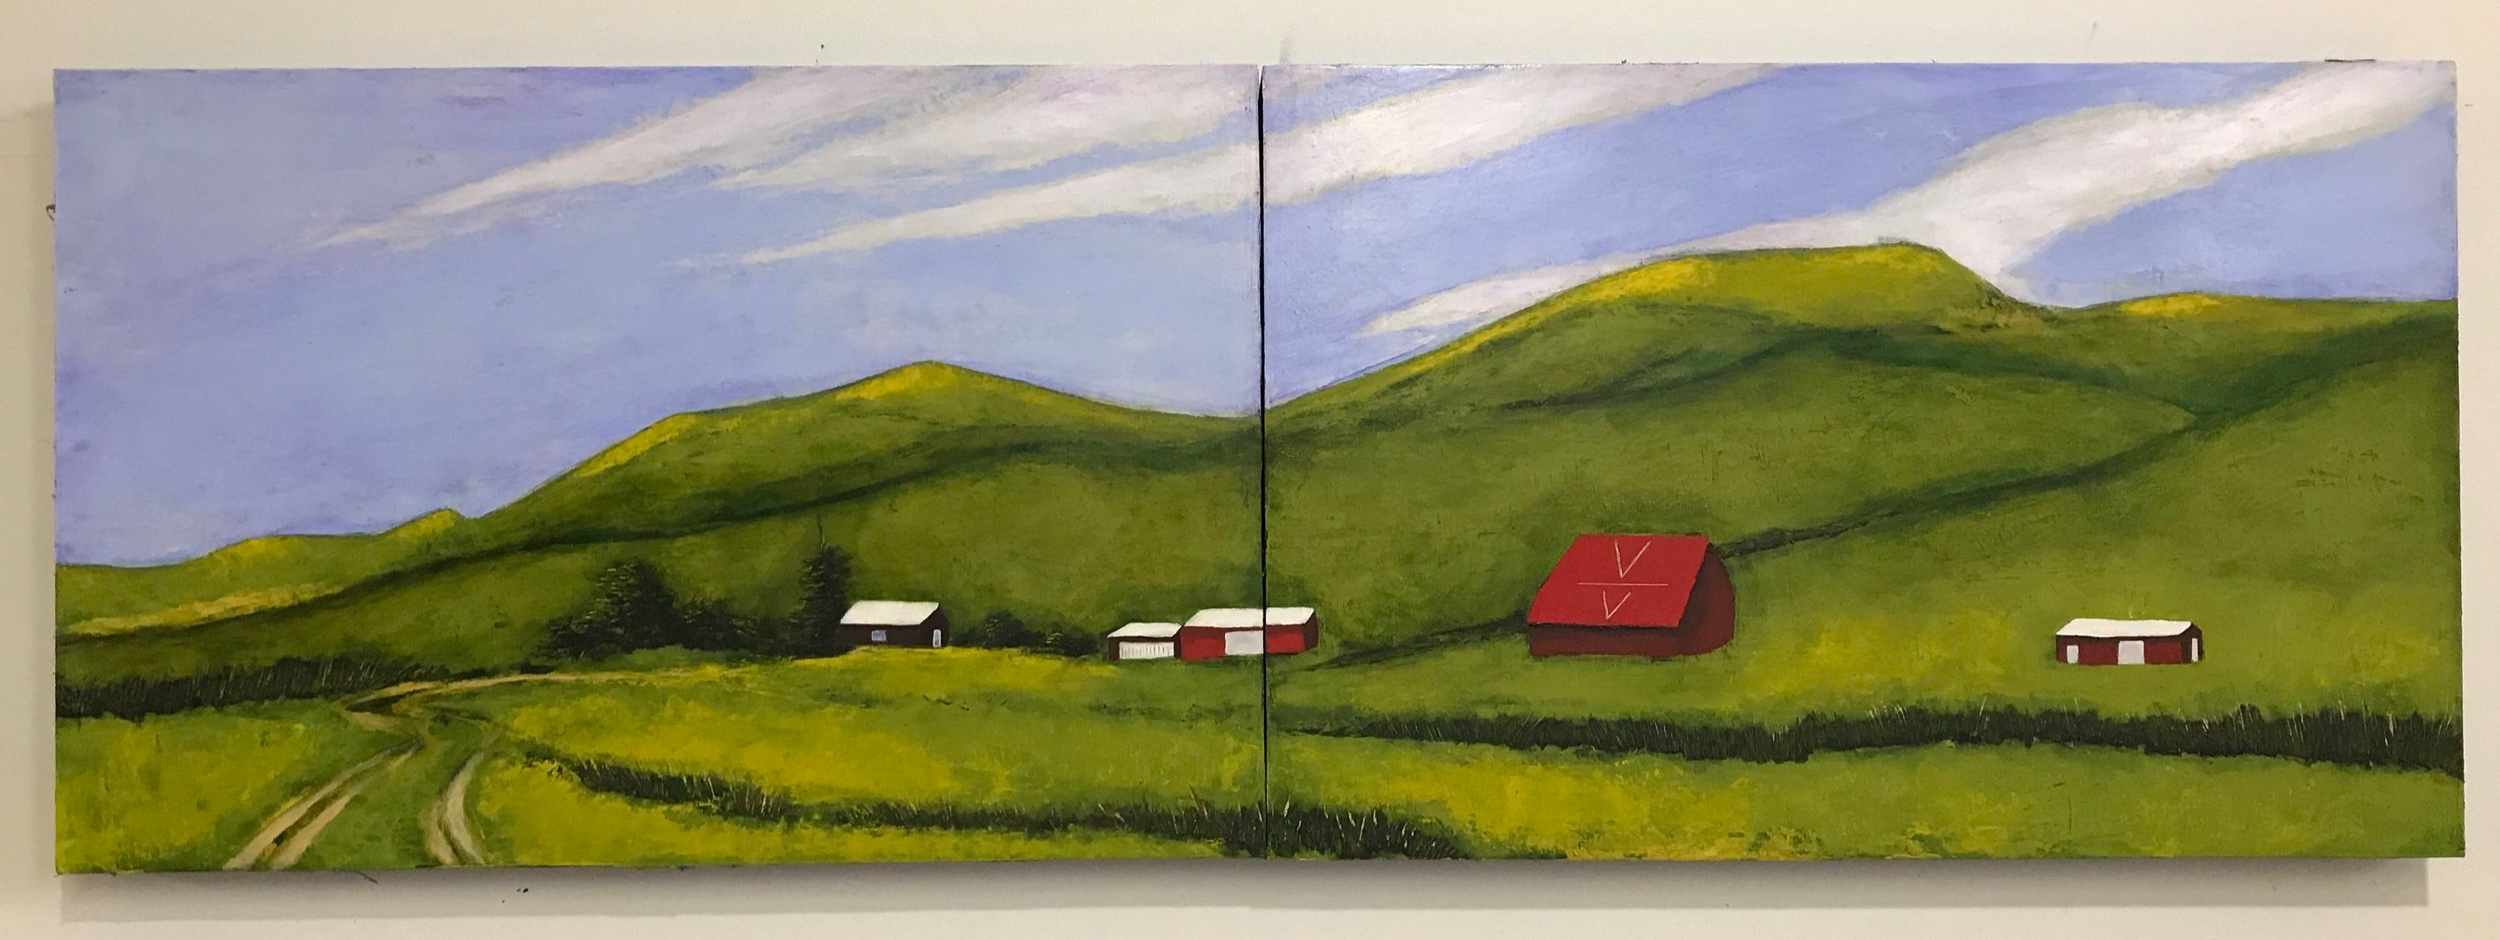 "60""x20"" painting on birch panels depicting a Nebraska Sandhills ranch home place."